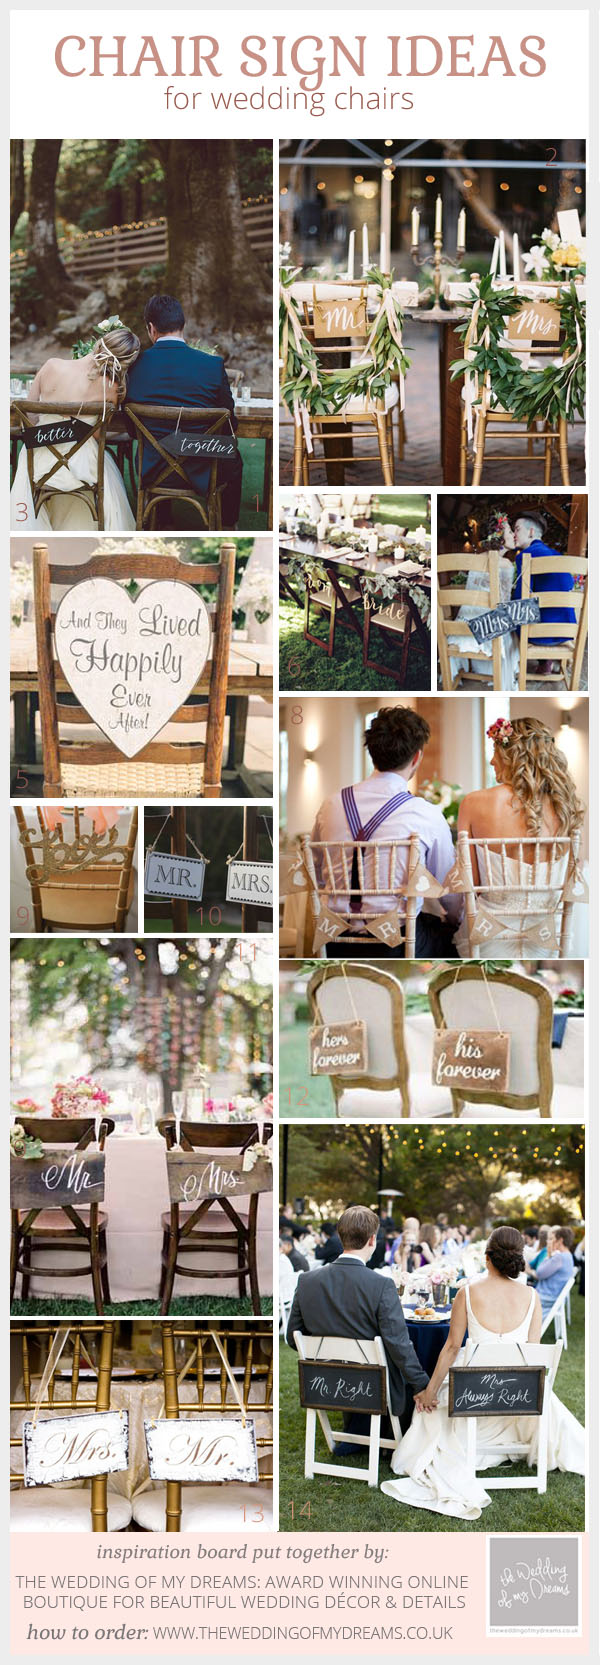 Wedding Chair Sign Ideas by @theweddingomd